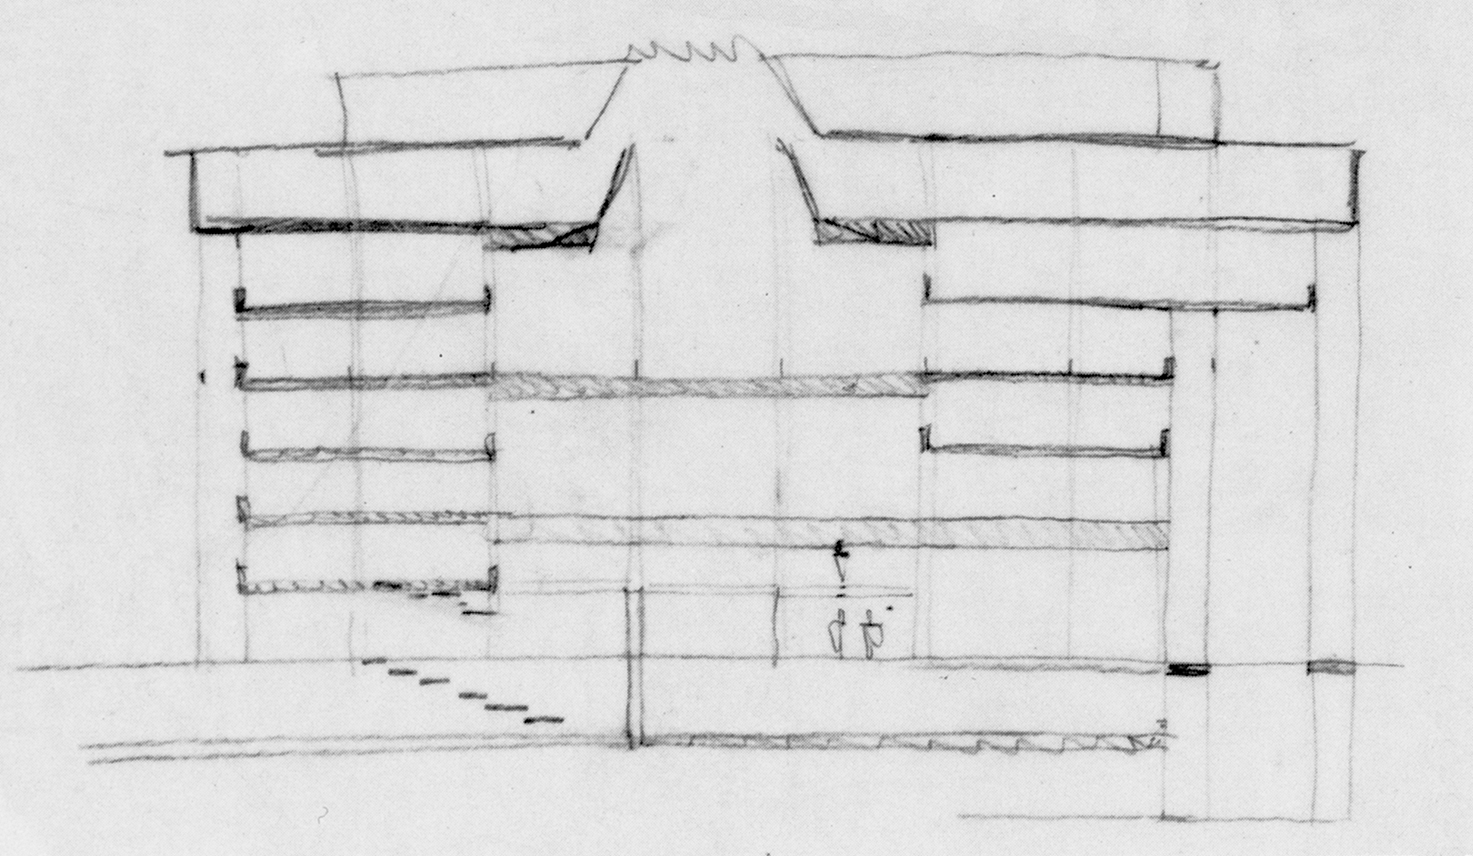 Art and Architecture Building, Yale University, New Haven, Connecticut. Section Sketch of Early Scheme.